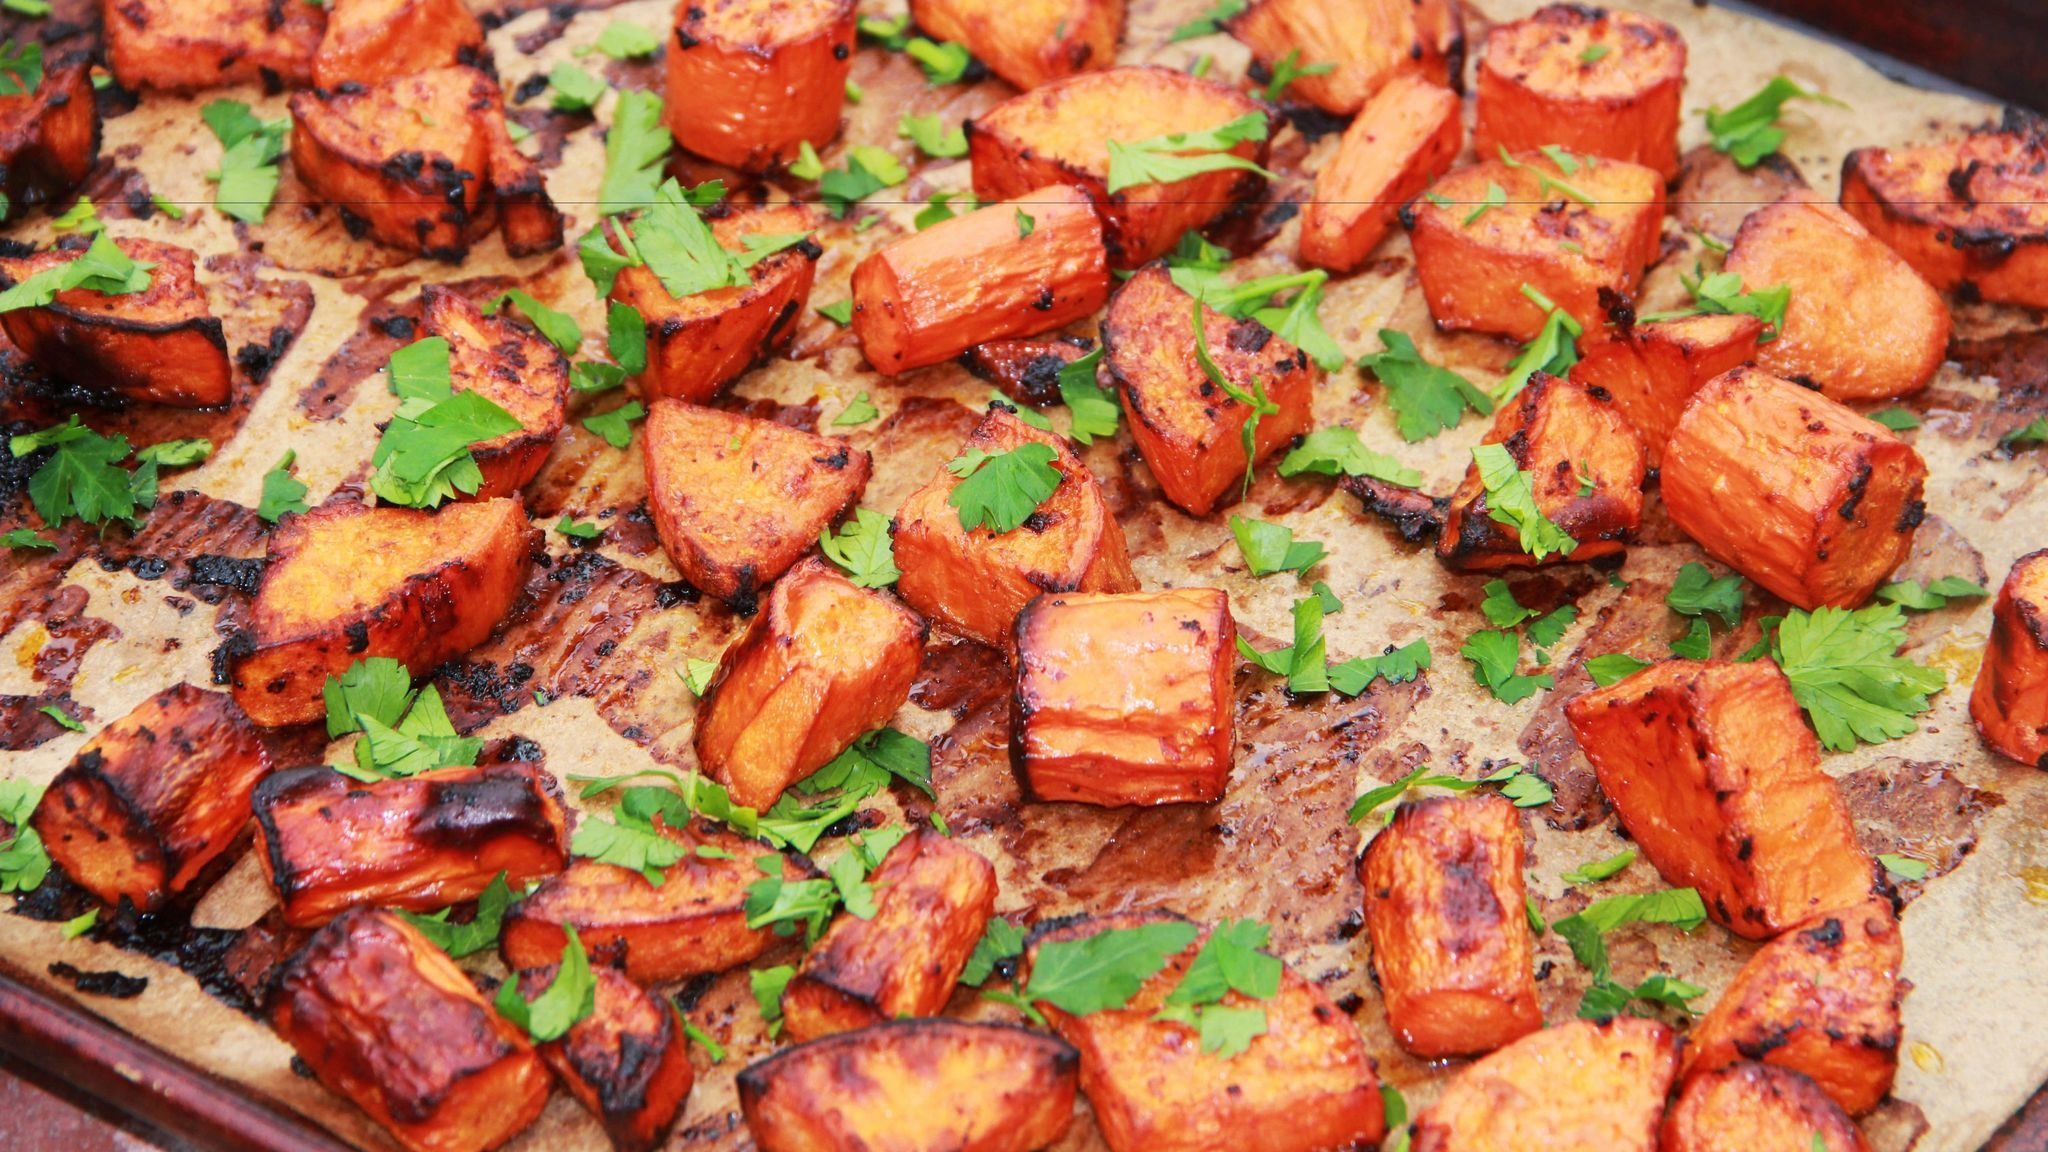 Roasted sweet potatoes and carrots.